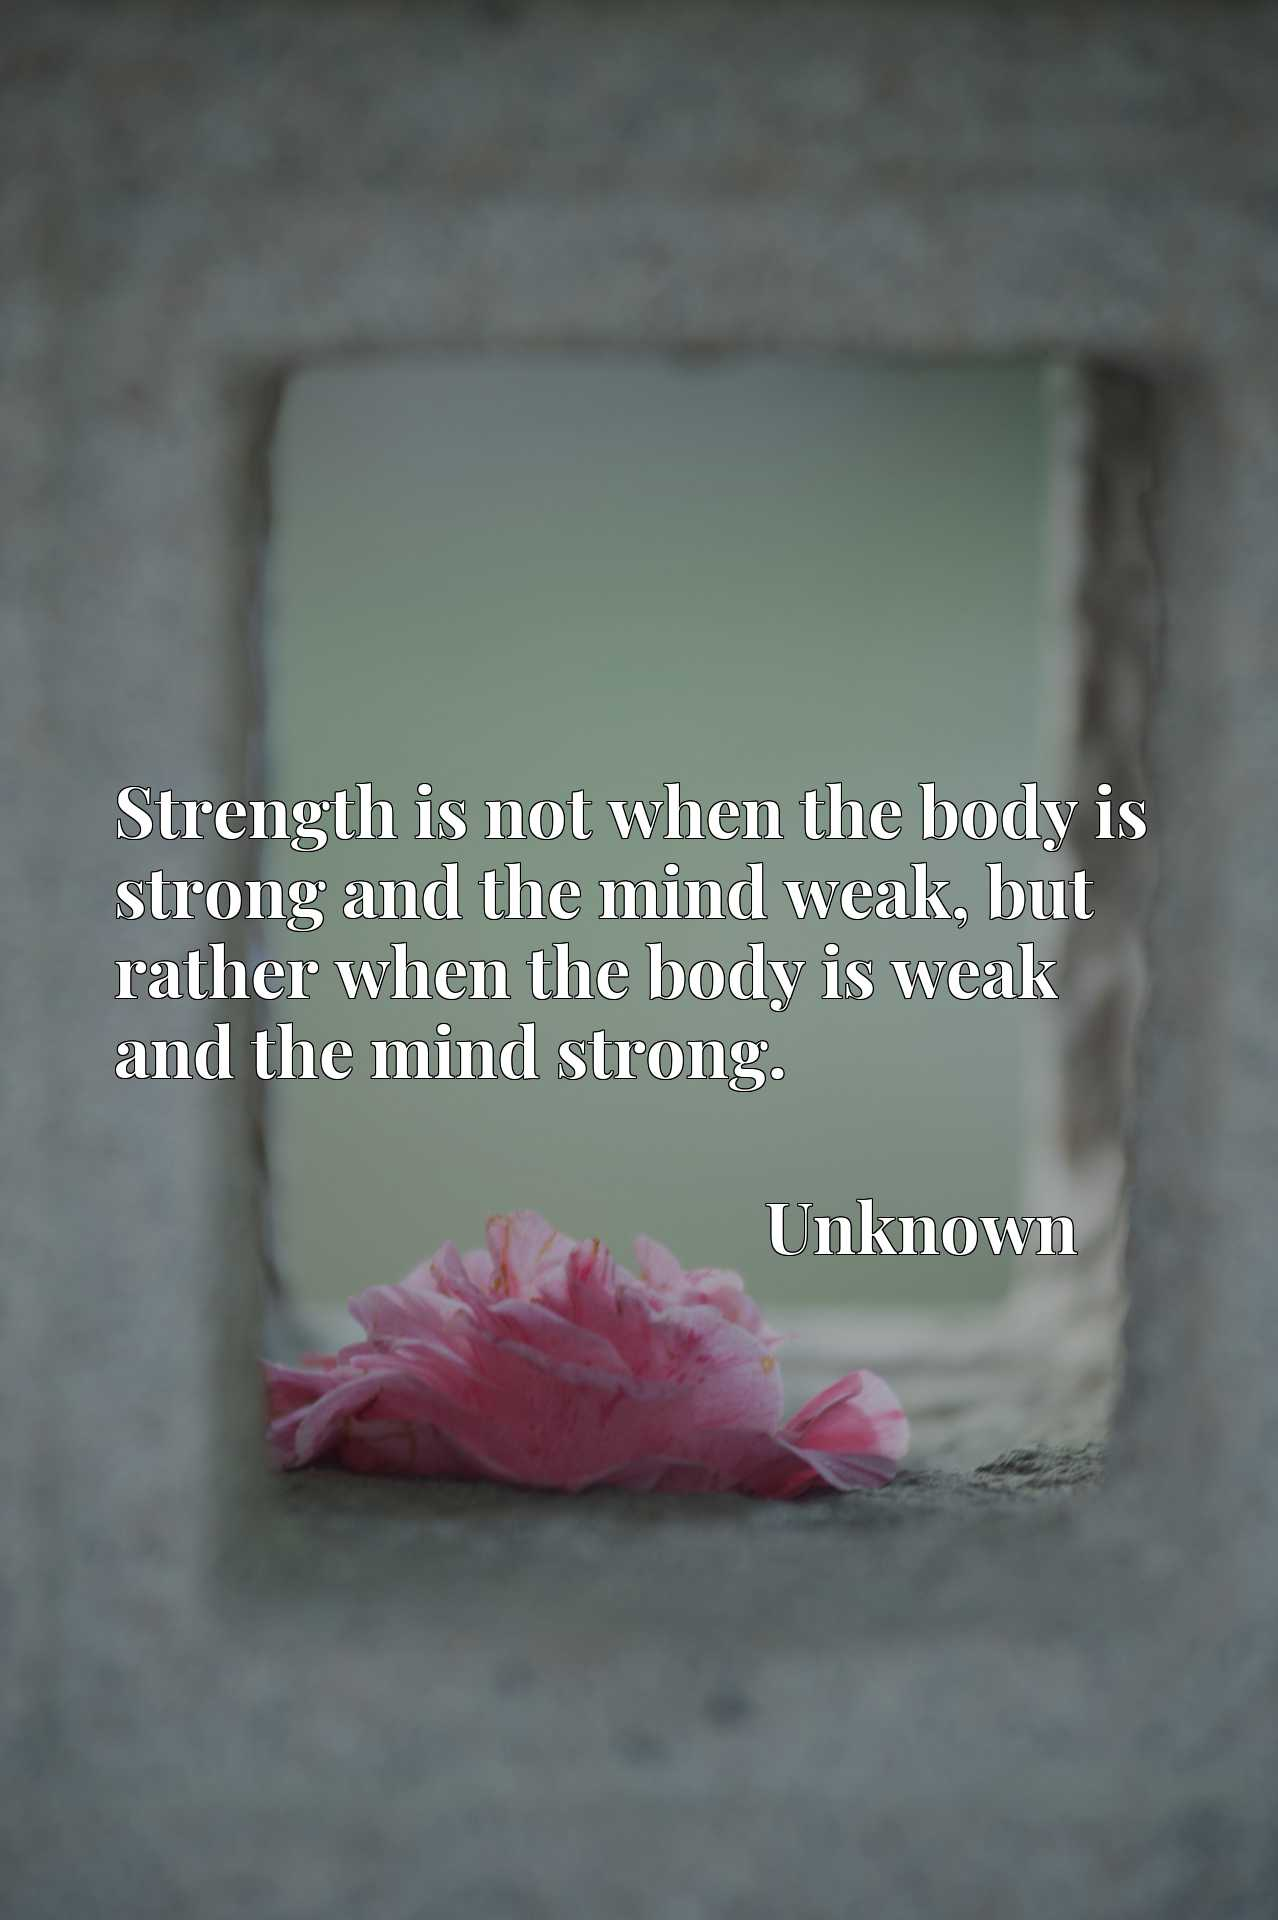 Strength is not when the body is strong and the mind weak, but rather when the body is weak and the mind strong.